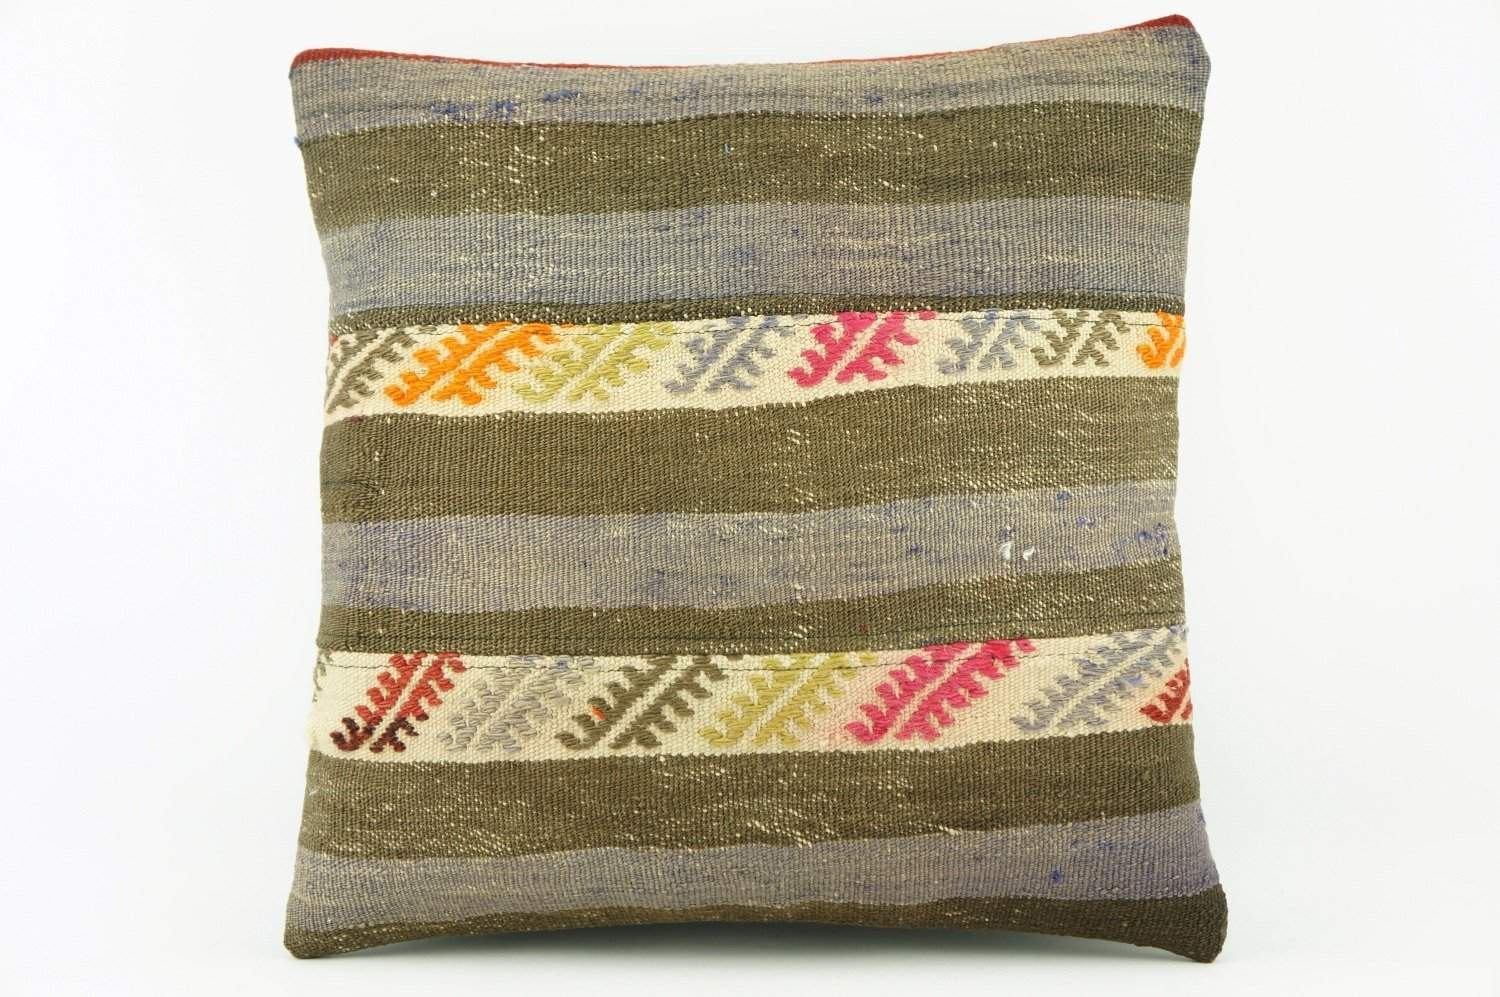 Gray and green  Kilim  pillow cover, old  pillow, ethnic  pillow , Outdoor pillow   2133 - kilimpillowstore  - 1